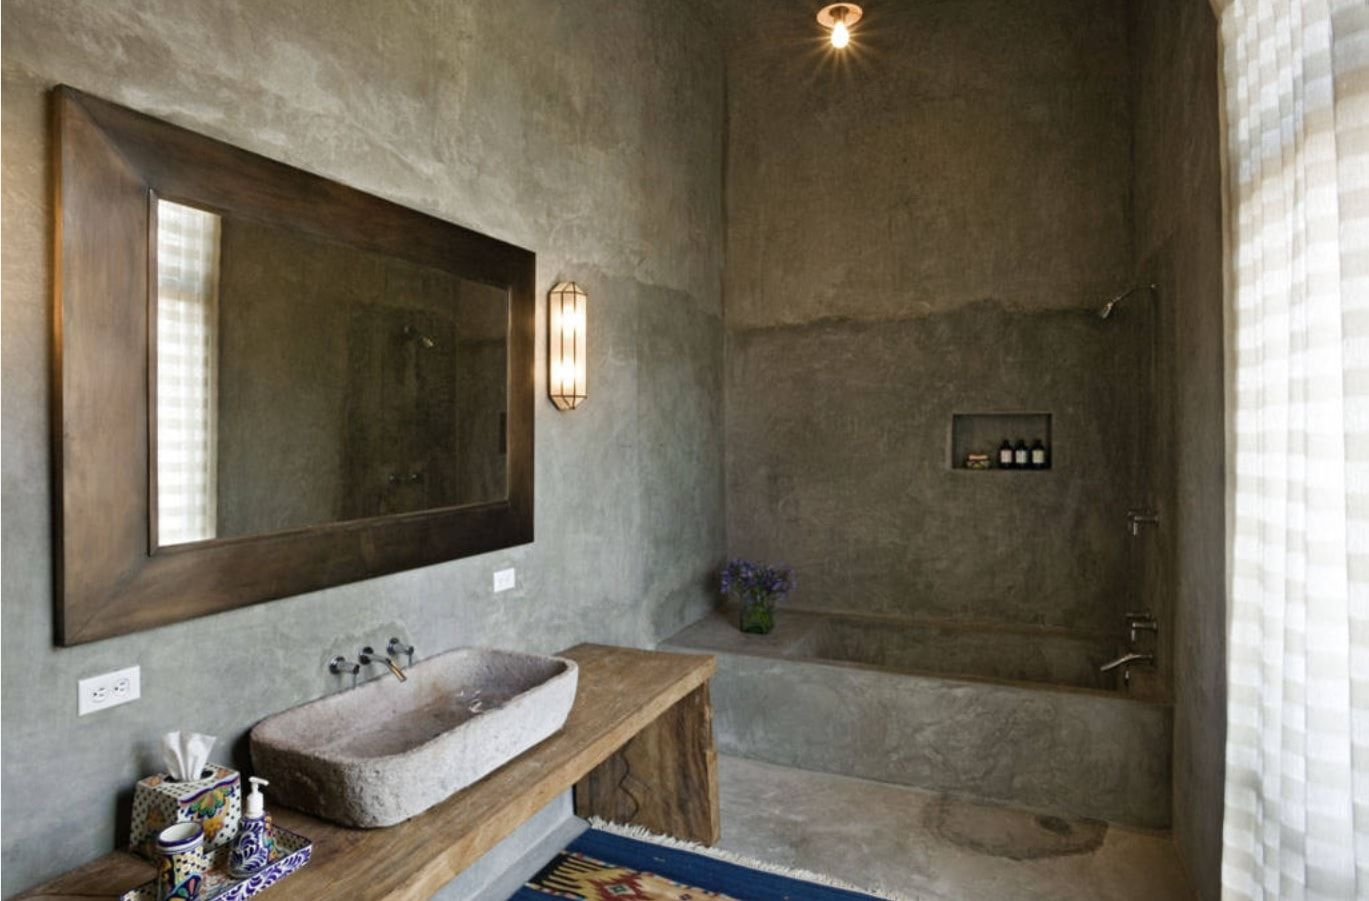 Faux Concrete Wall Paint: Modern and Original Finishing. Wet walls decoration effect for the bathroom